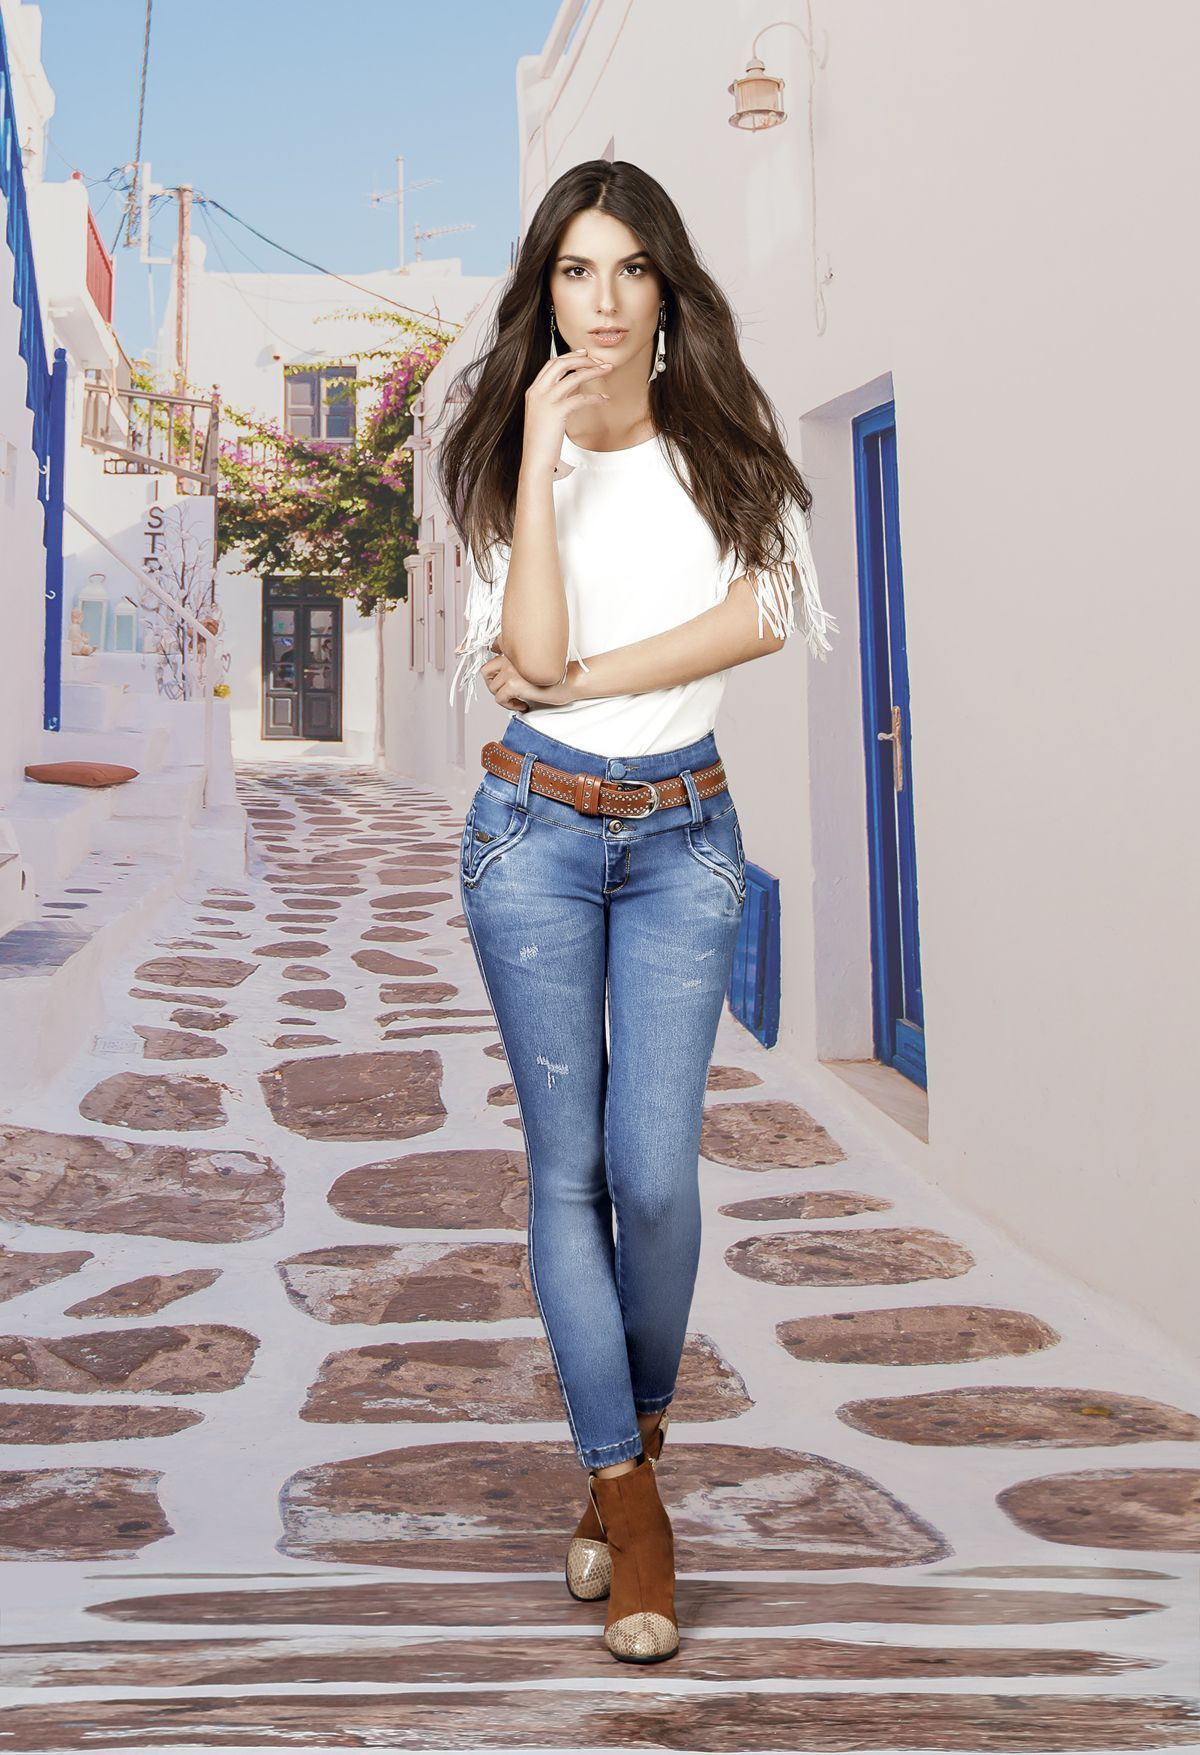 a1d63eda6 Divina Collection Jeans / Bogotá - Colombia | Jeans in 2019 | Jeans ...